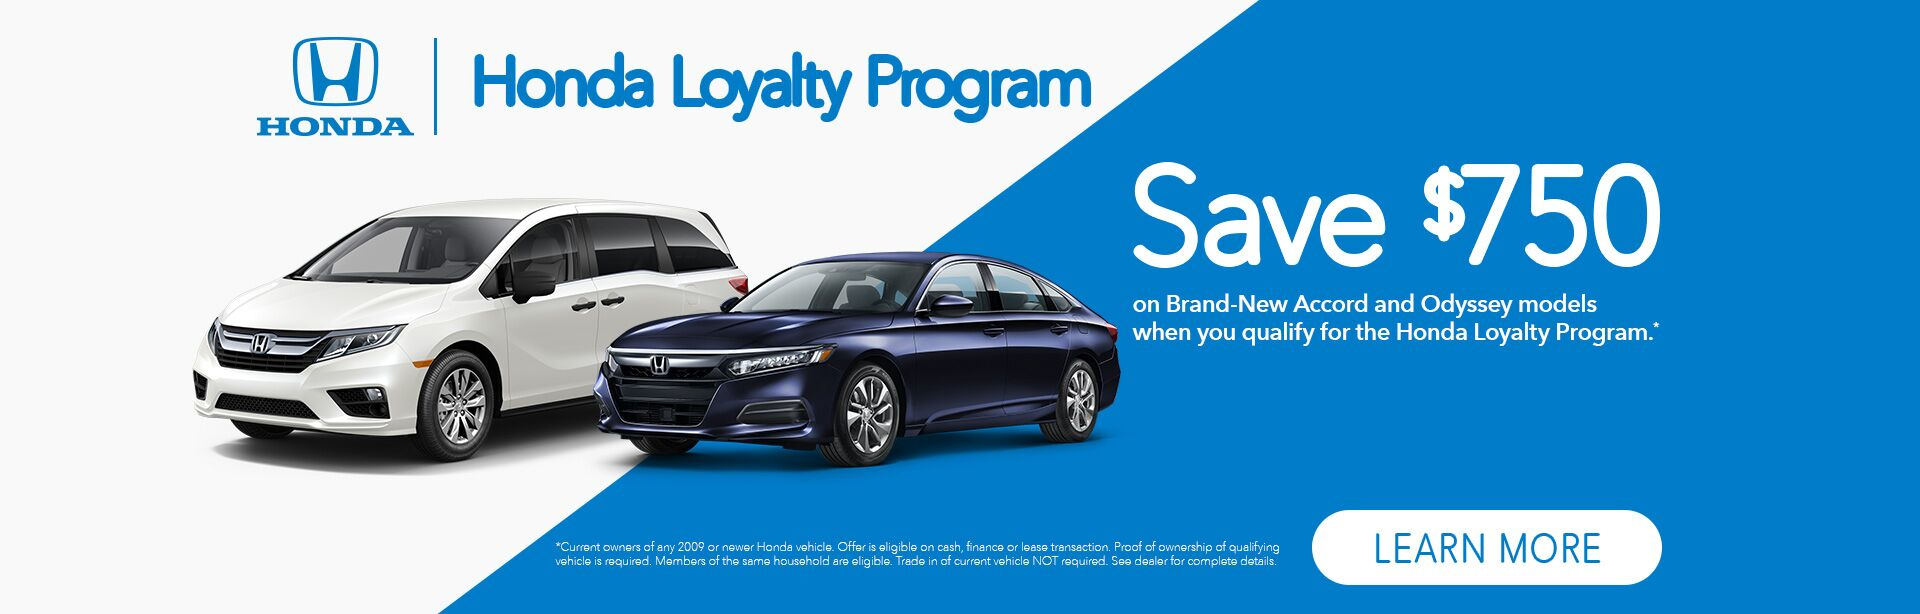 Gates Honda Loyalty Program in Richmond, KY